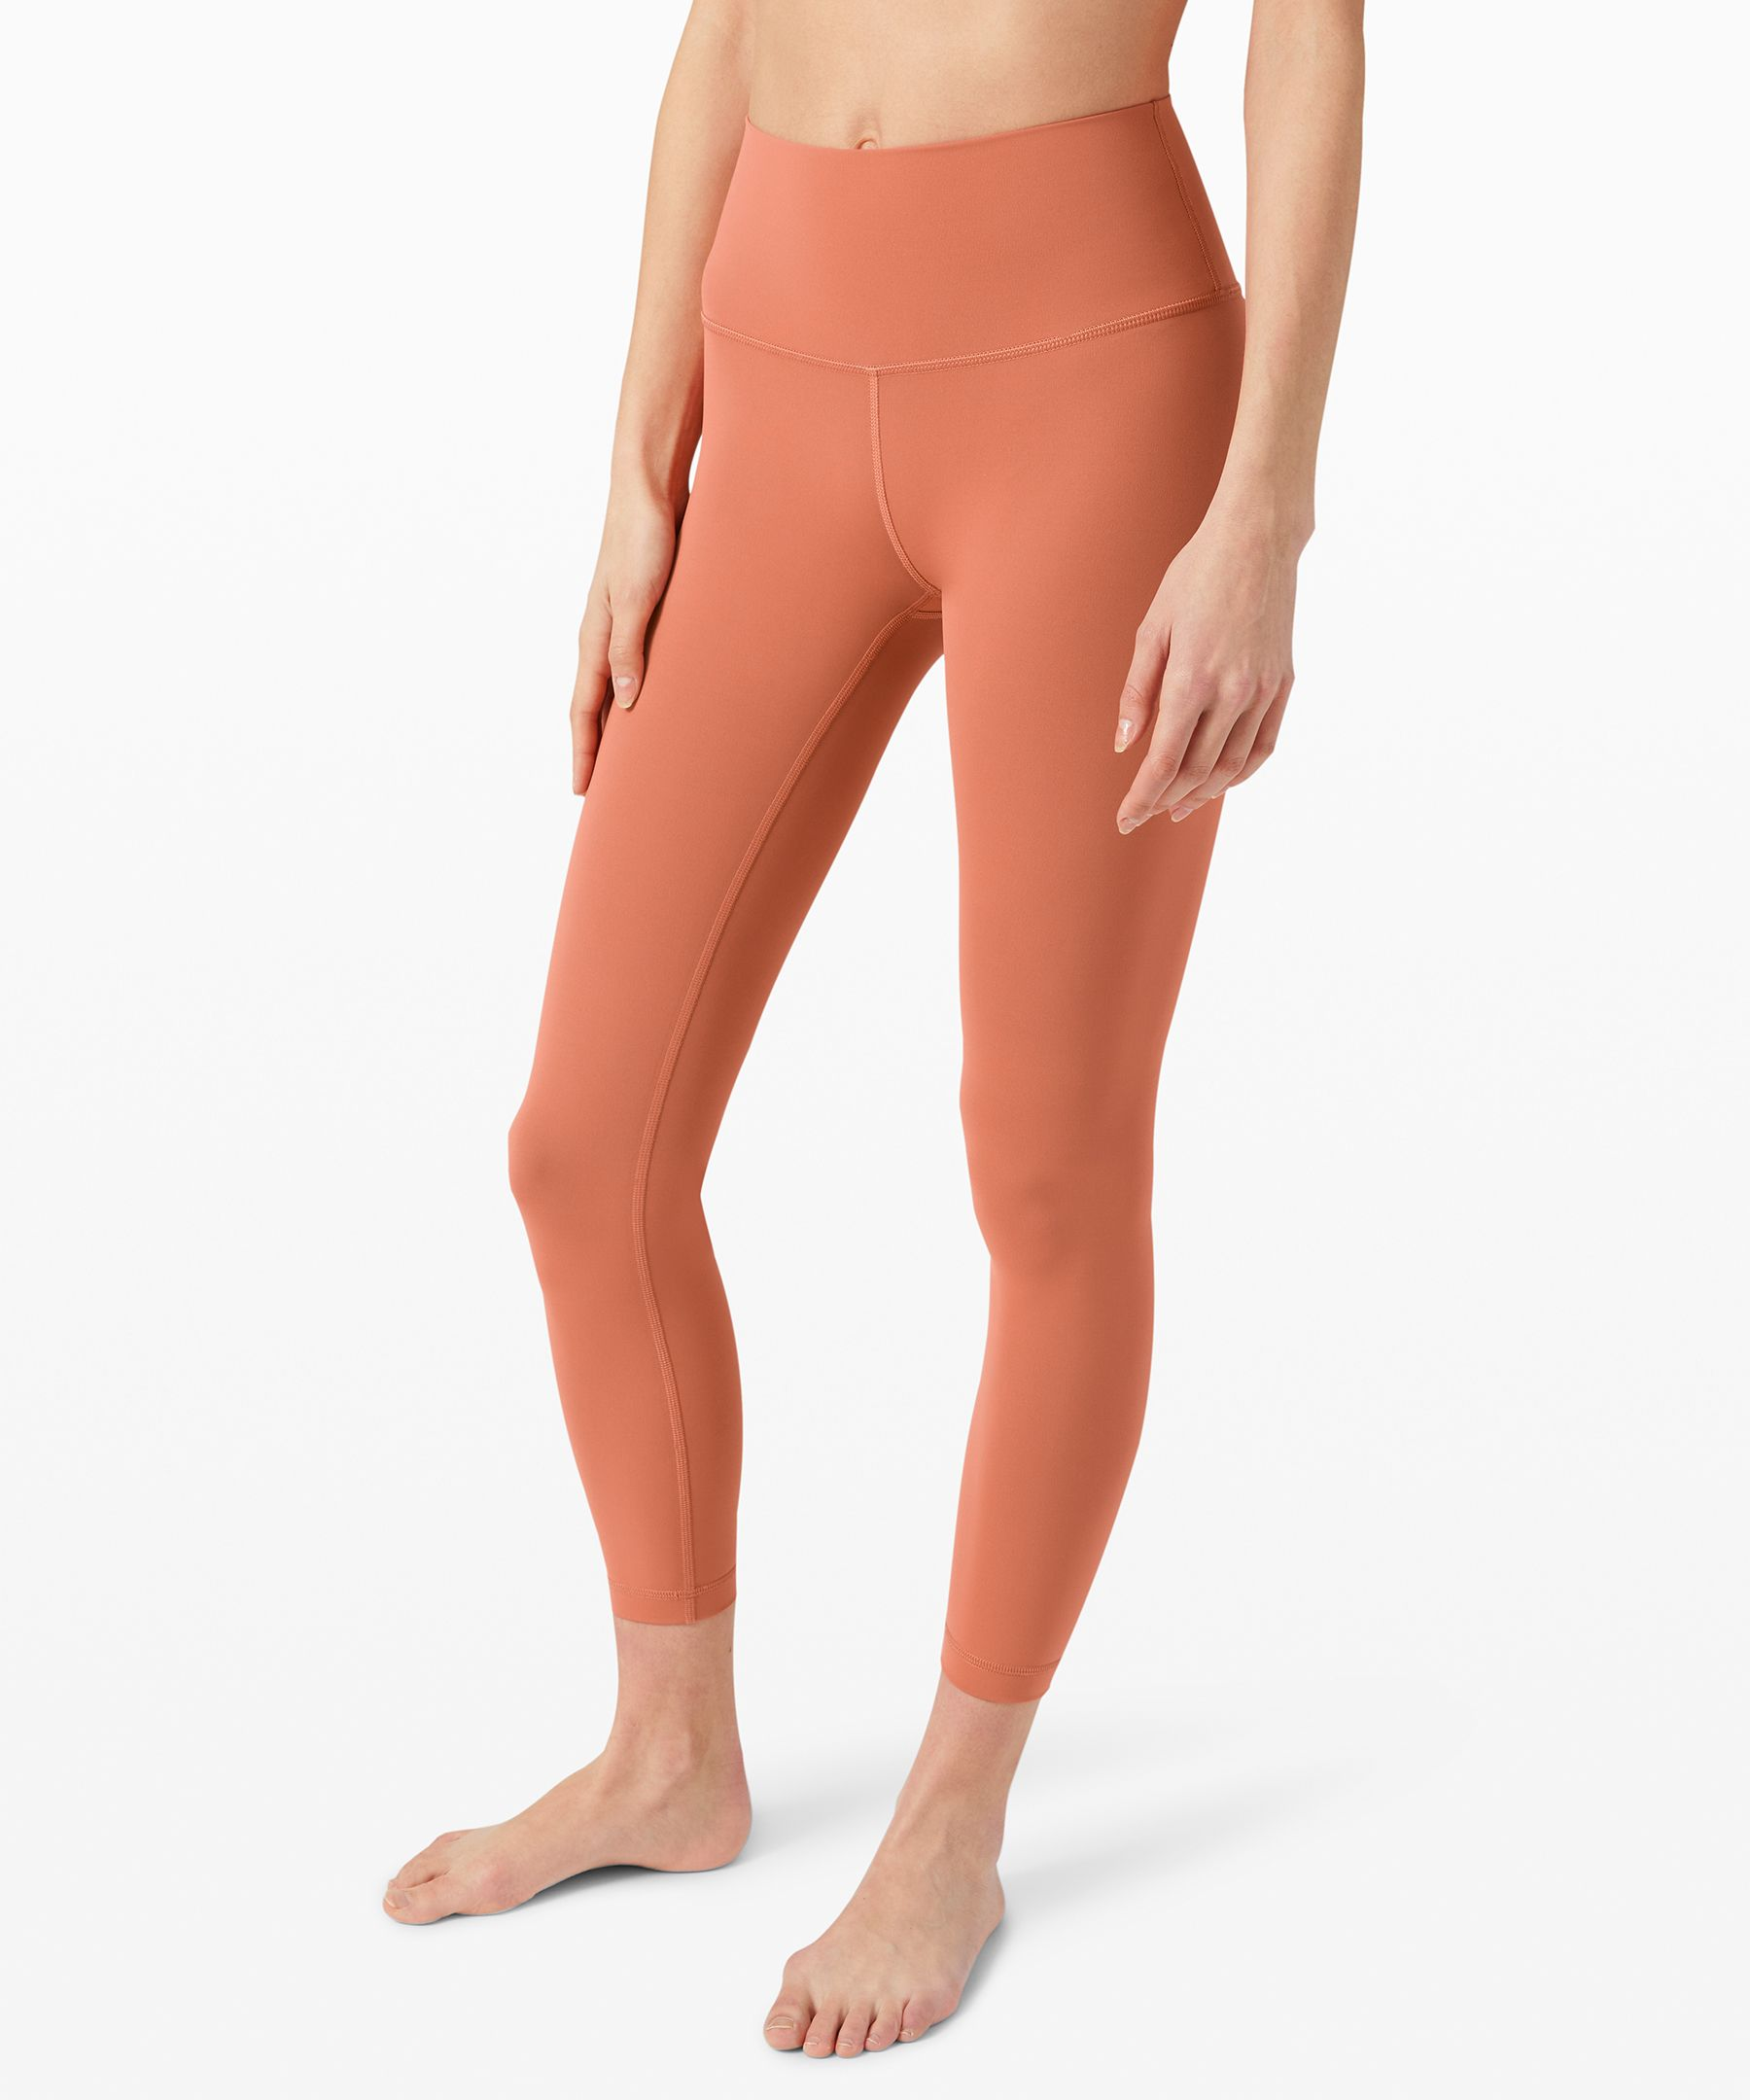 These versatile, high-rise  tights were designed to fit  like a second skin—perfect for  yoga or the gym.